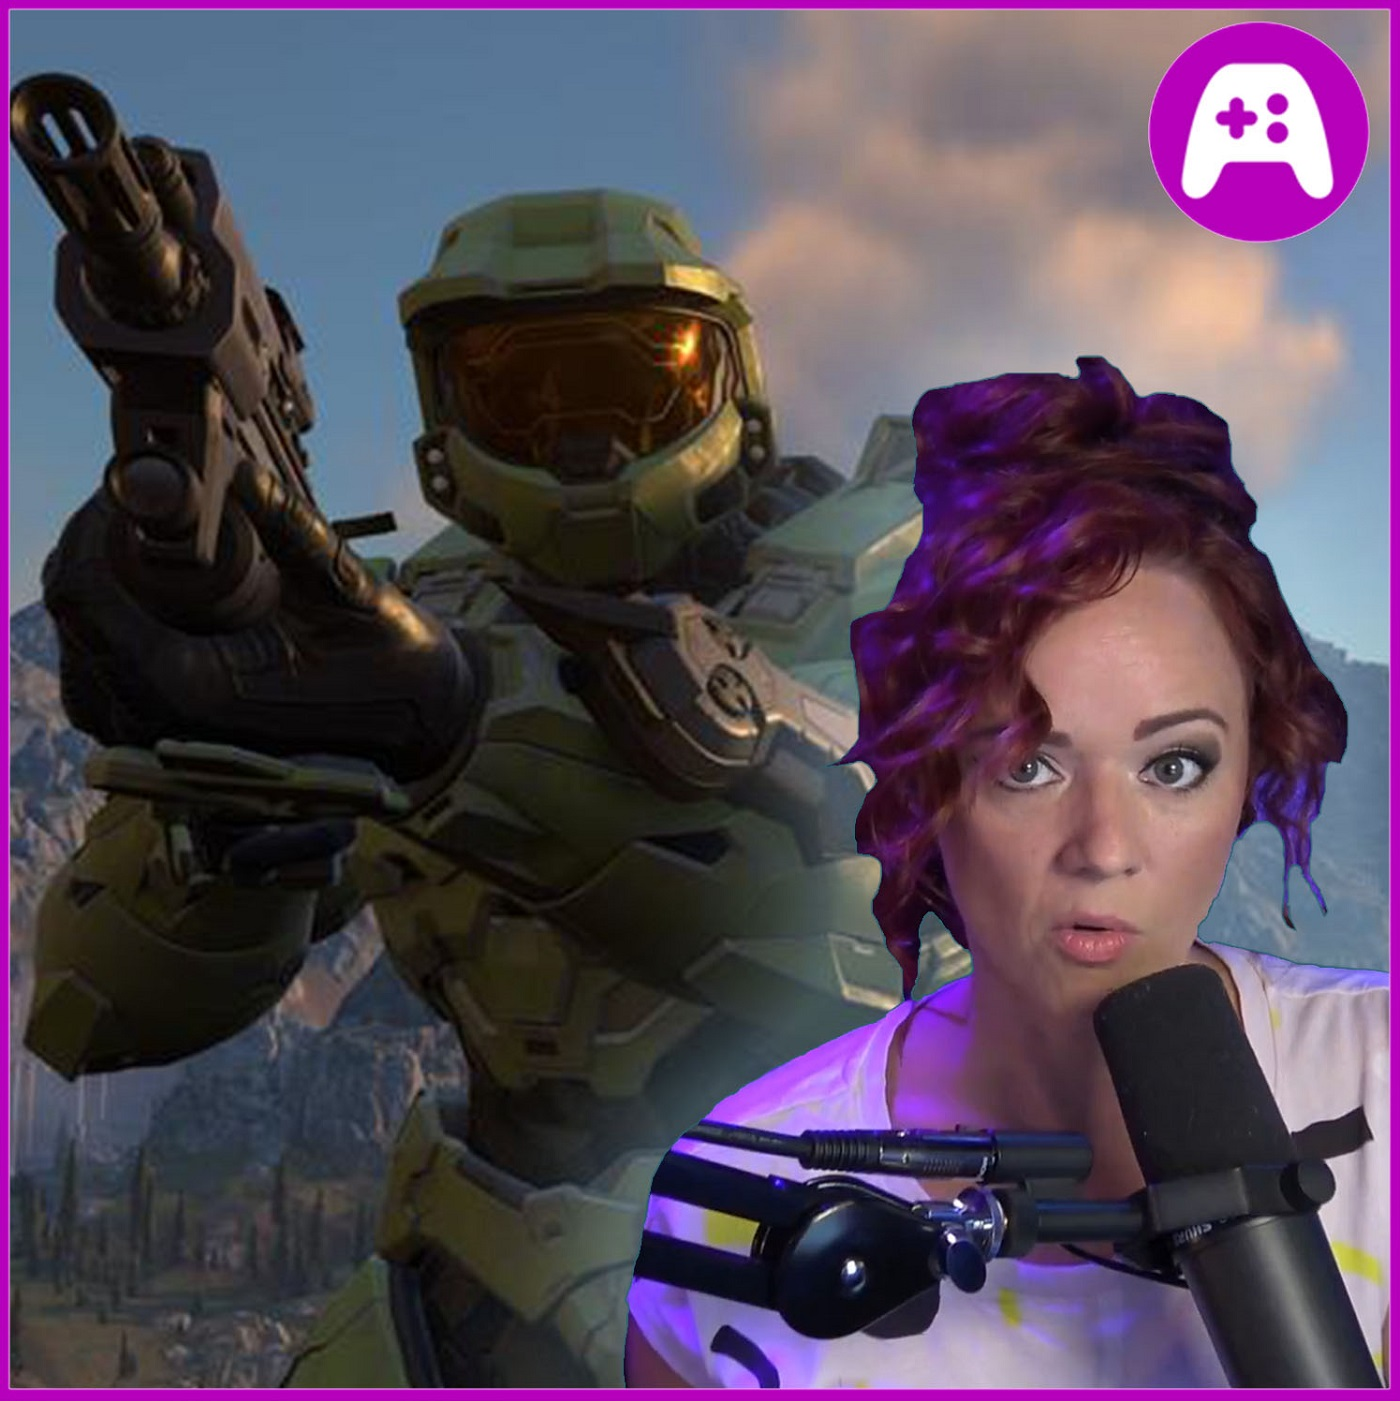 More Halo Infinite Details - What's Good Games (Ep. 177)